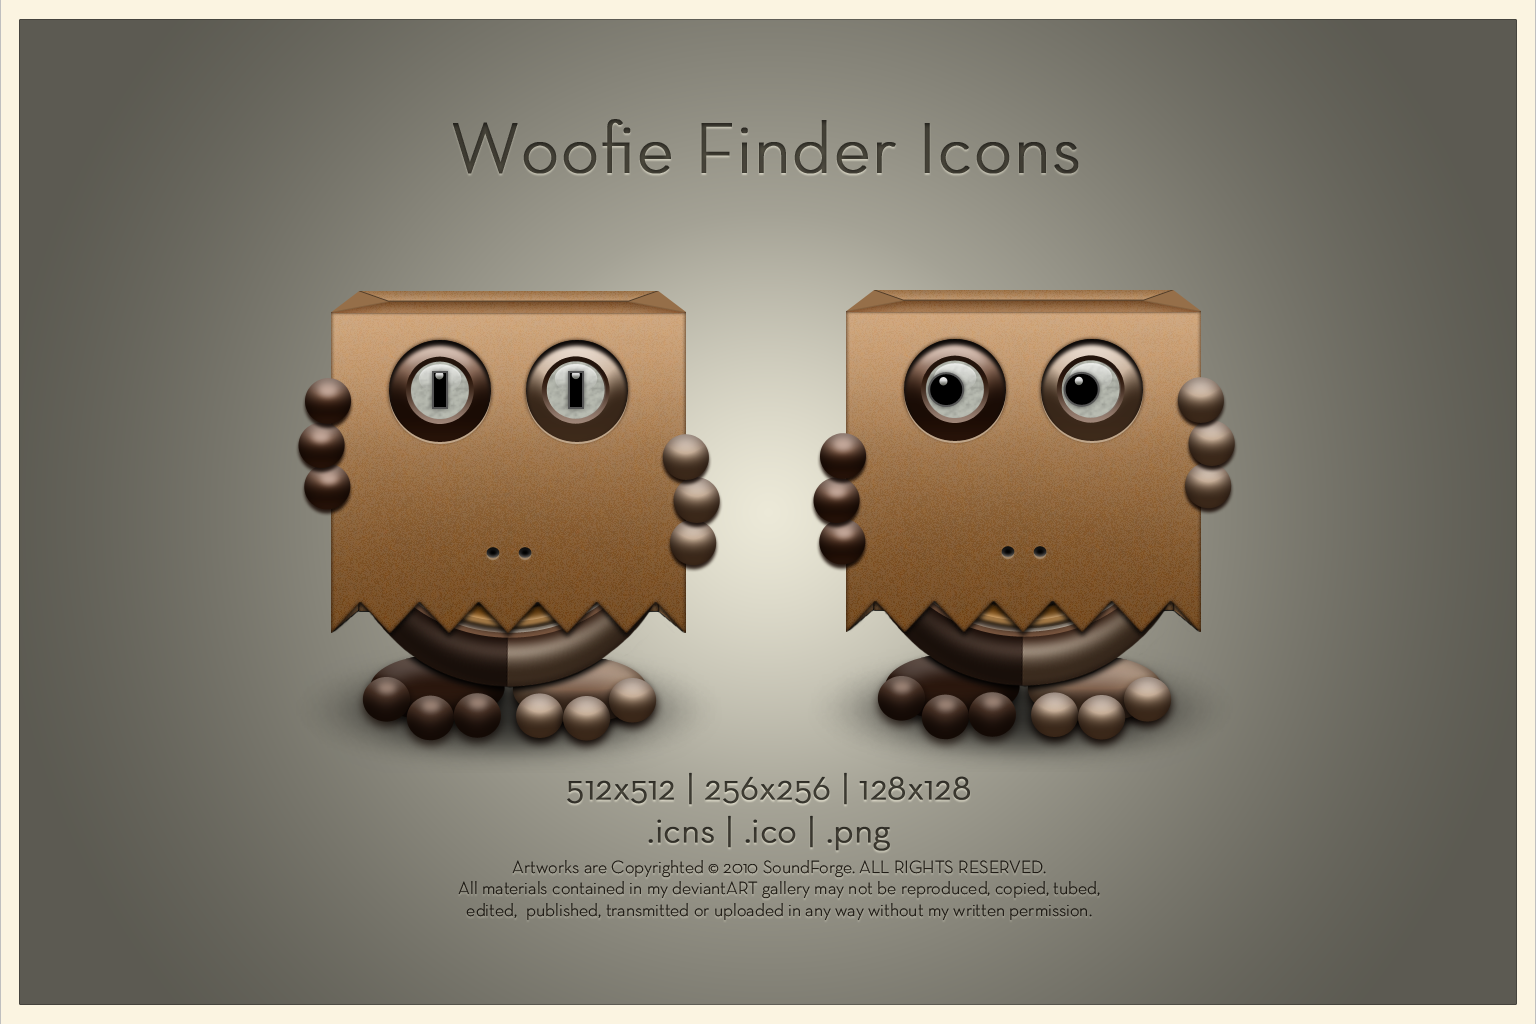 Woofie Finder Icon by SoundForge